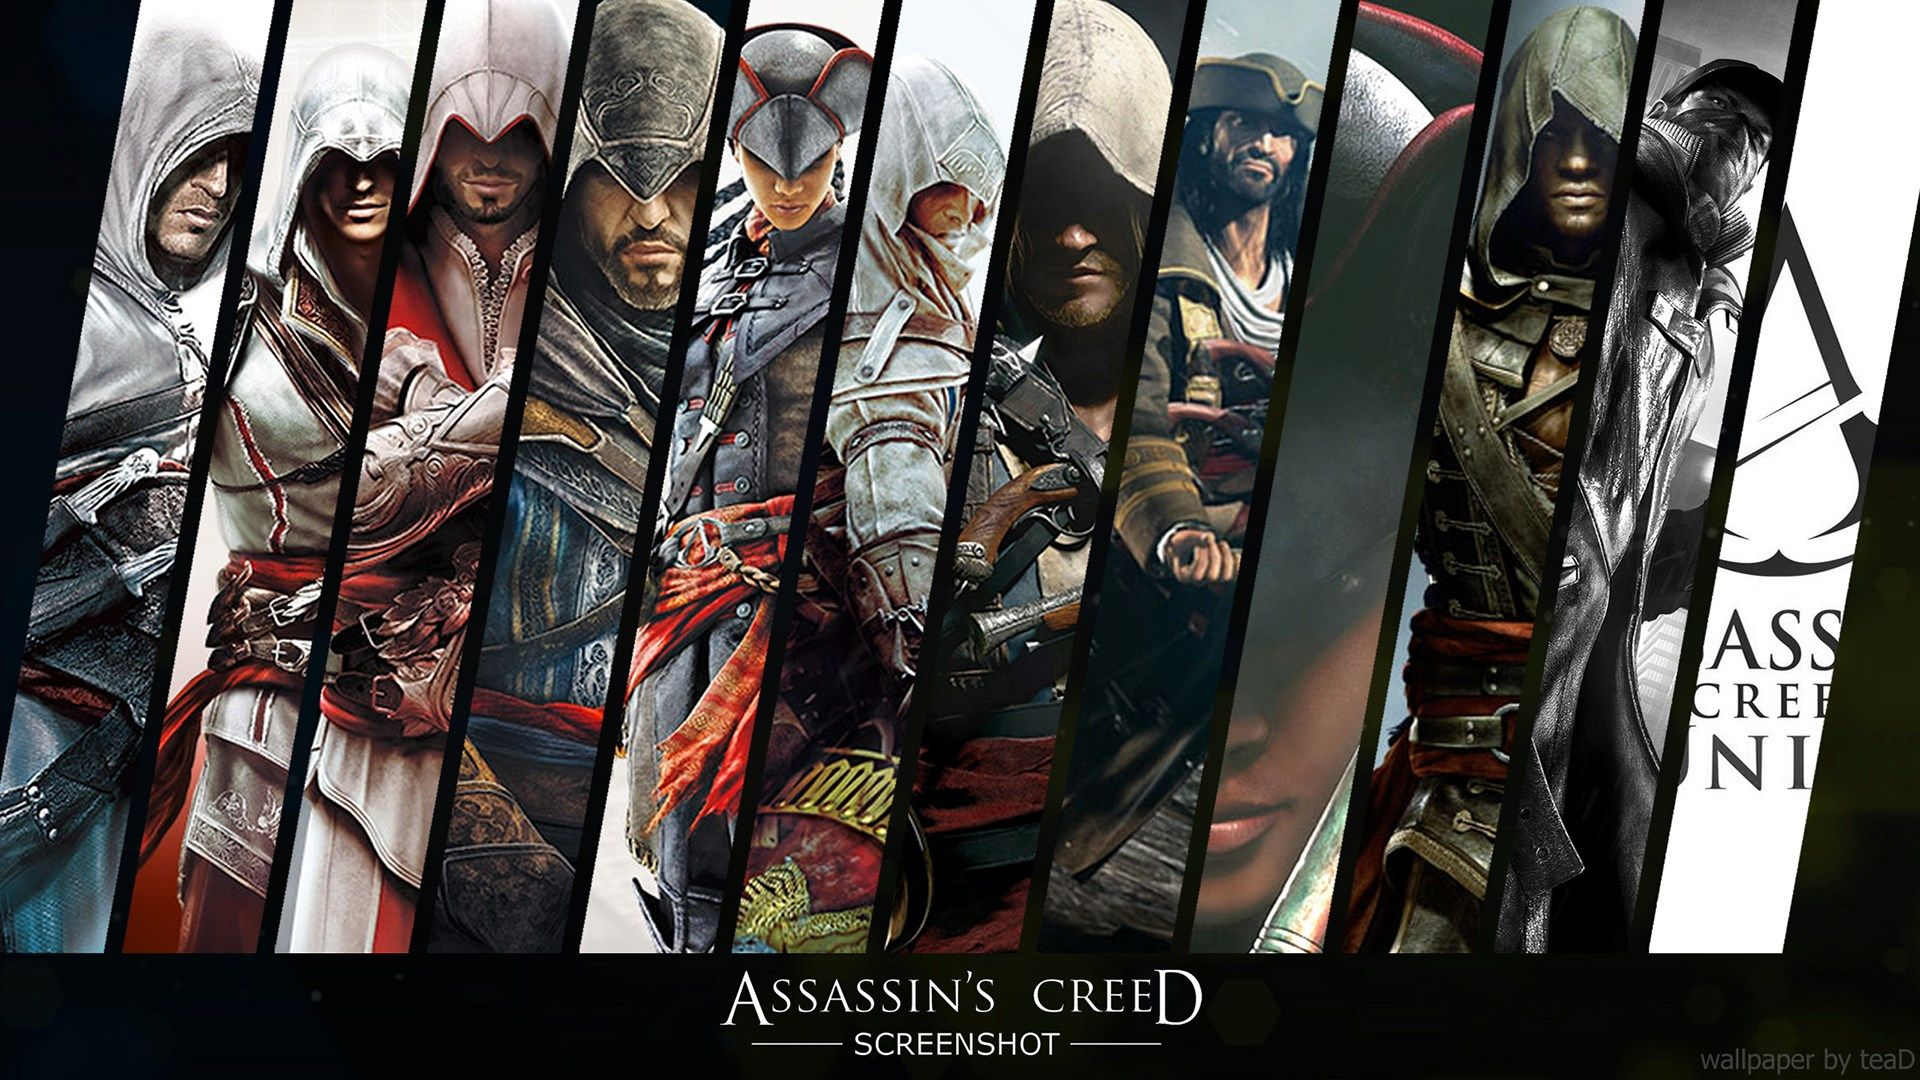 2016 05 07 wallpapers for desktop assassins creed pic 7412 assassins creed wallpapers all assassins wallpapers wallpapers voltagebd Gallery